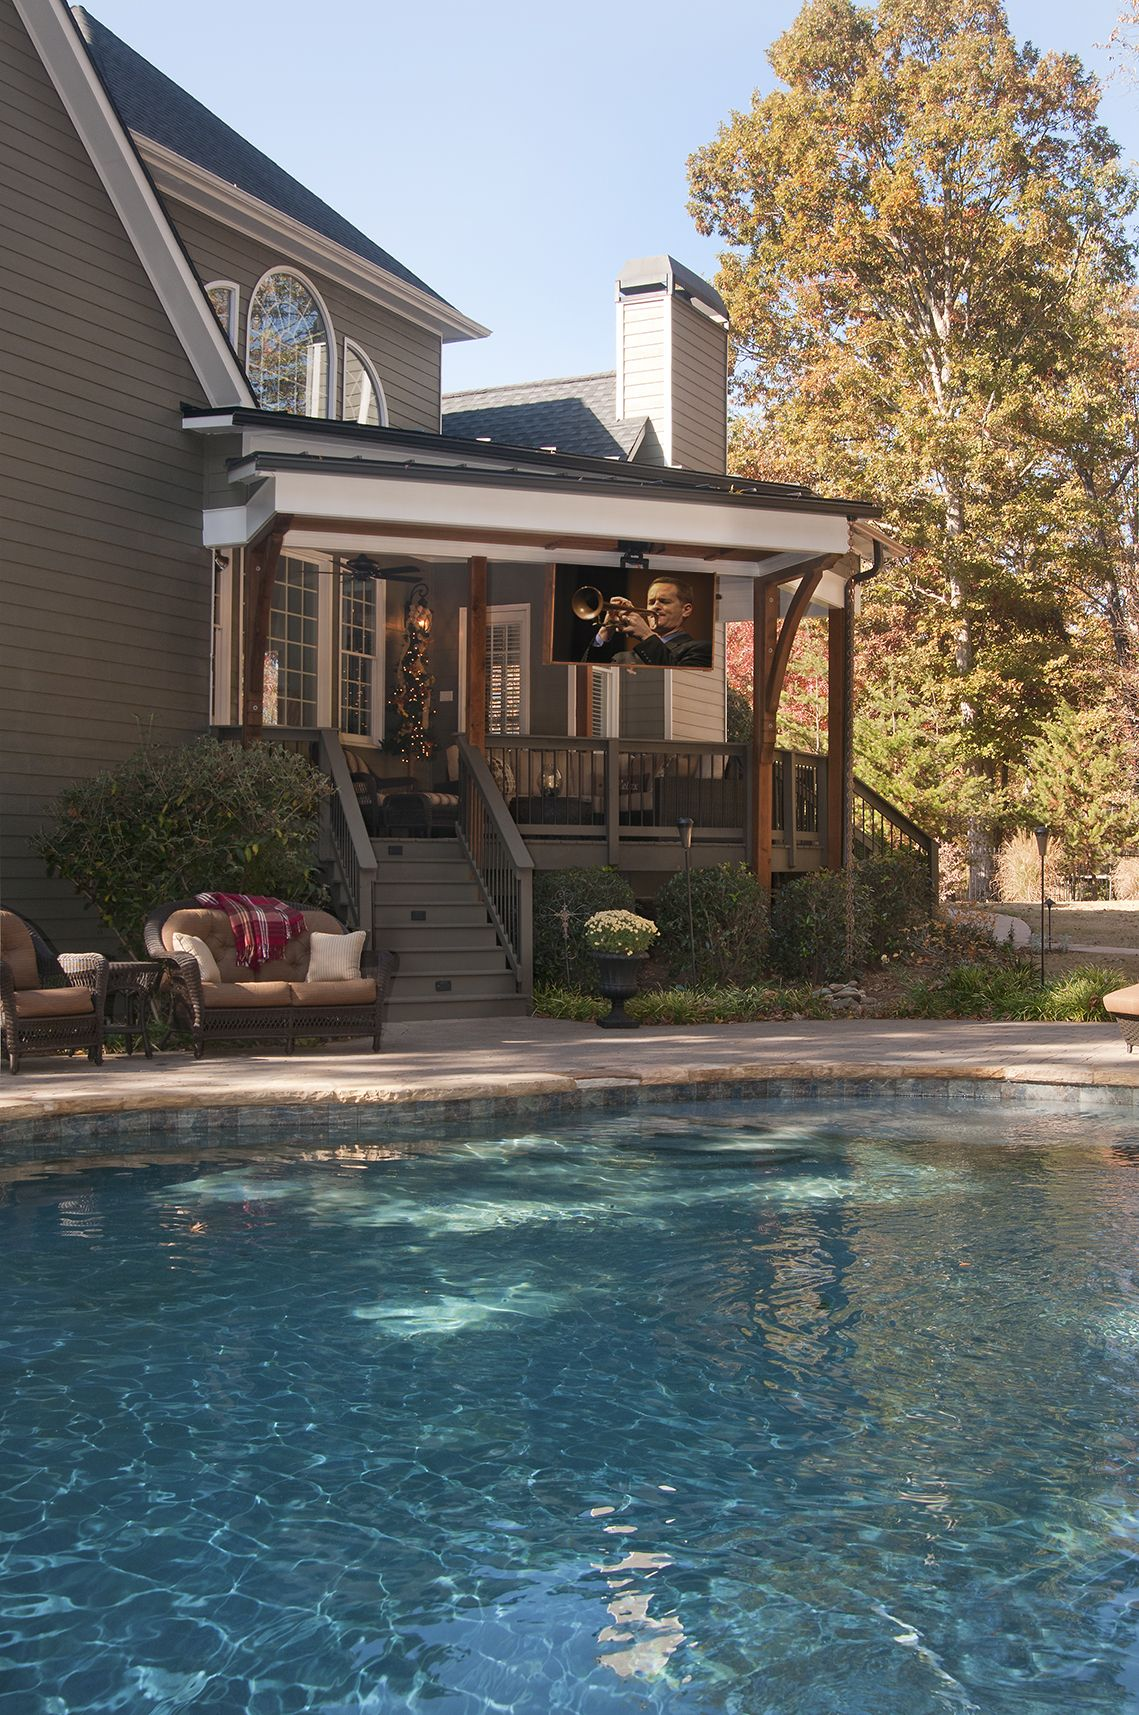 Open Porch With Recessed Tv That Comes Down And Rotates From Ceiling Viewable From Porch Or Pool Patio Pool Patio Decking Fence Outdoor Deck